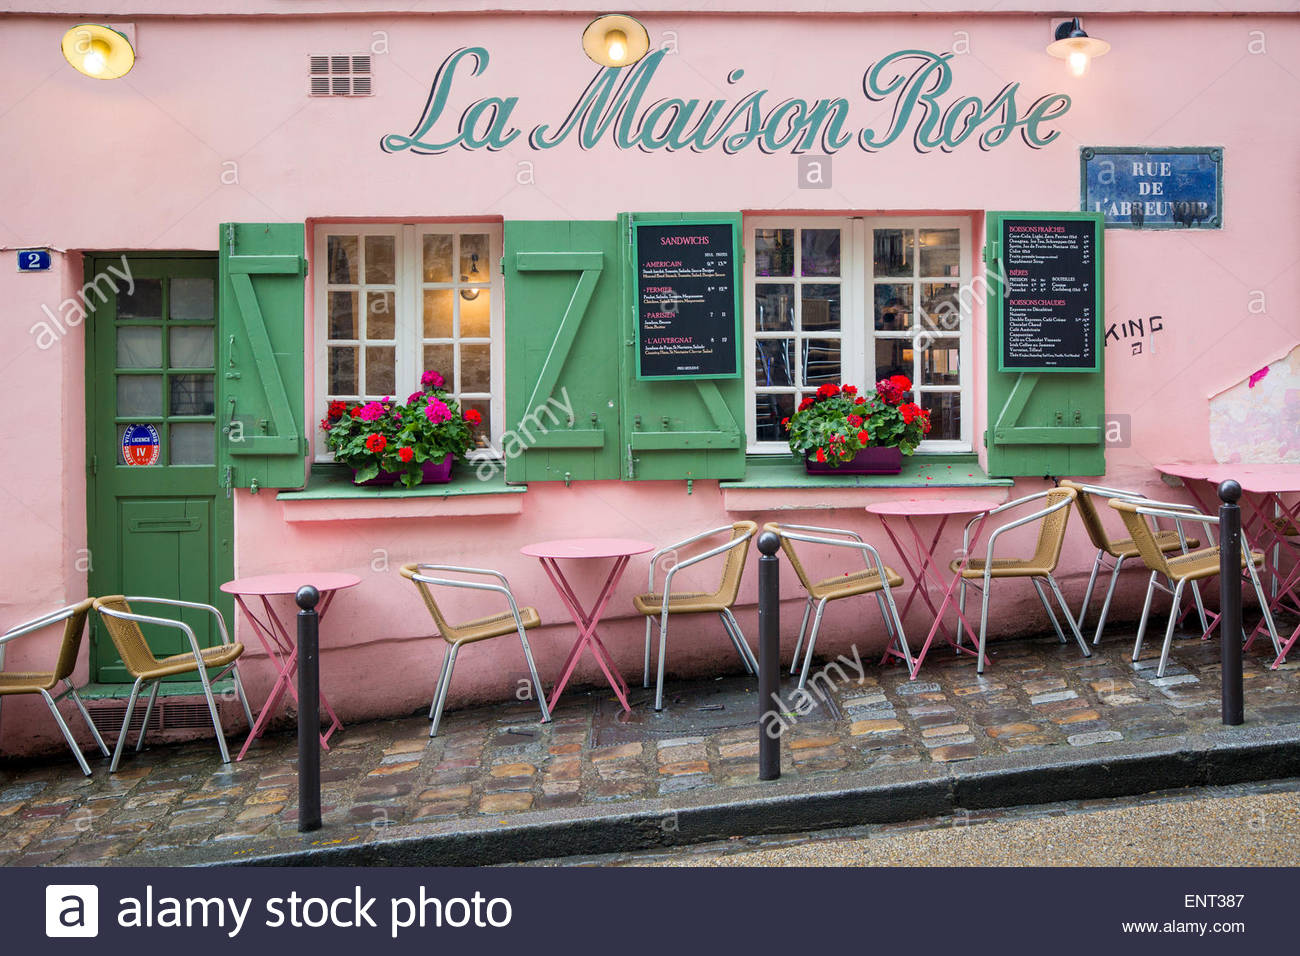 Cafe la maison rose montmartre paris france stock photo for Autour de la maison rose